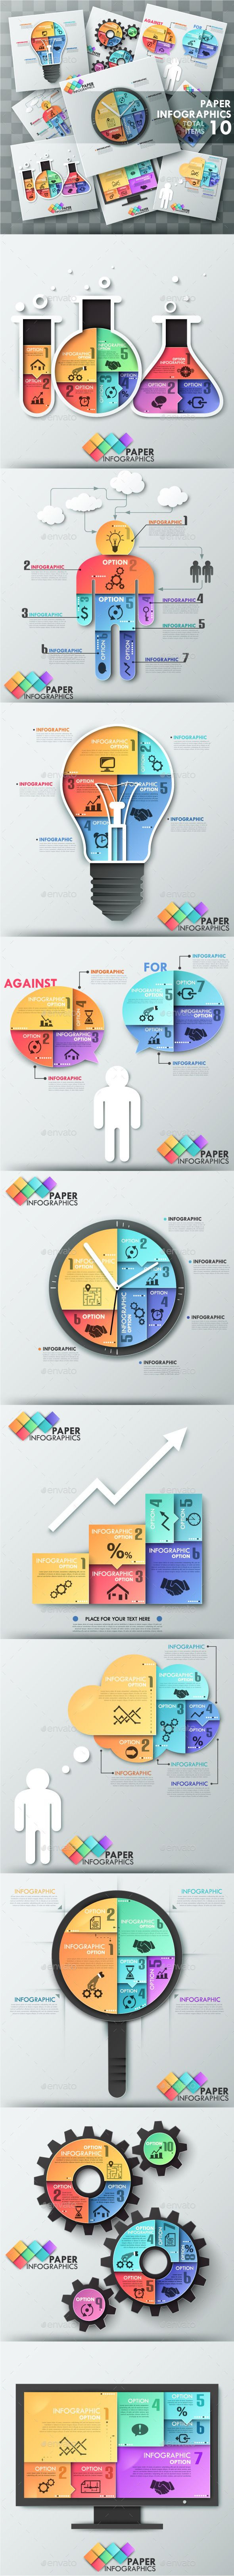 The Third Bundle. Paper Infographic Templates #design Download: http://graphicriver.net/item/the-third-bundle-paper-infographic-templates/9241597?ref=ksioks